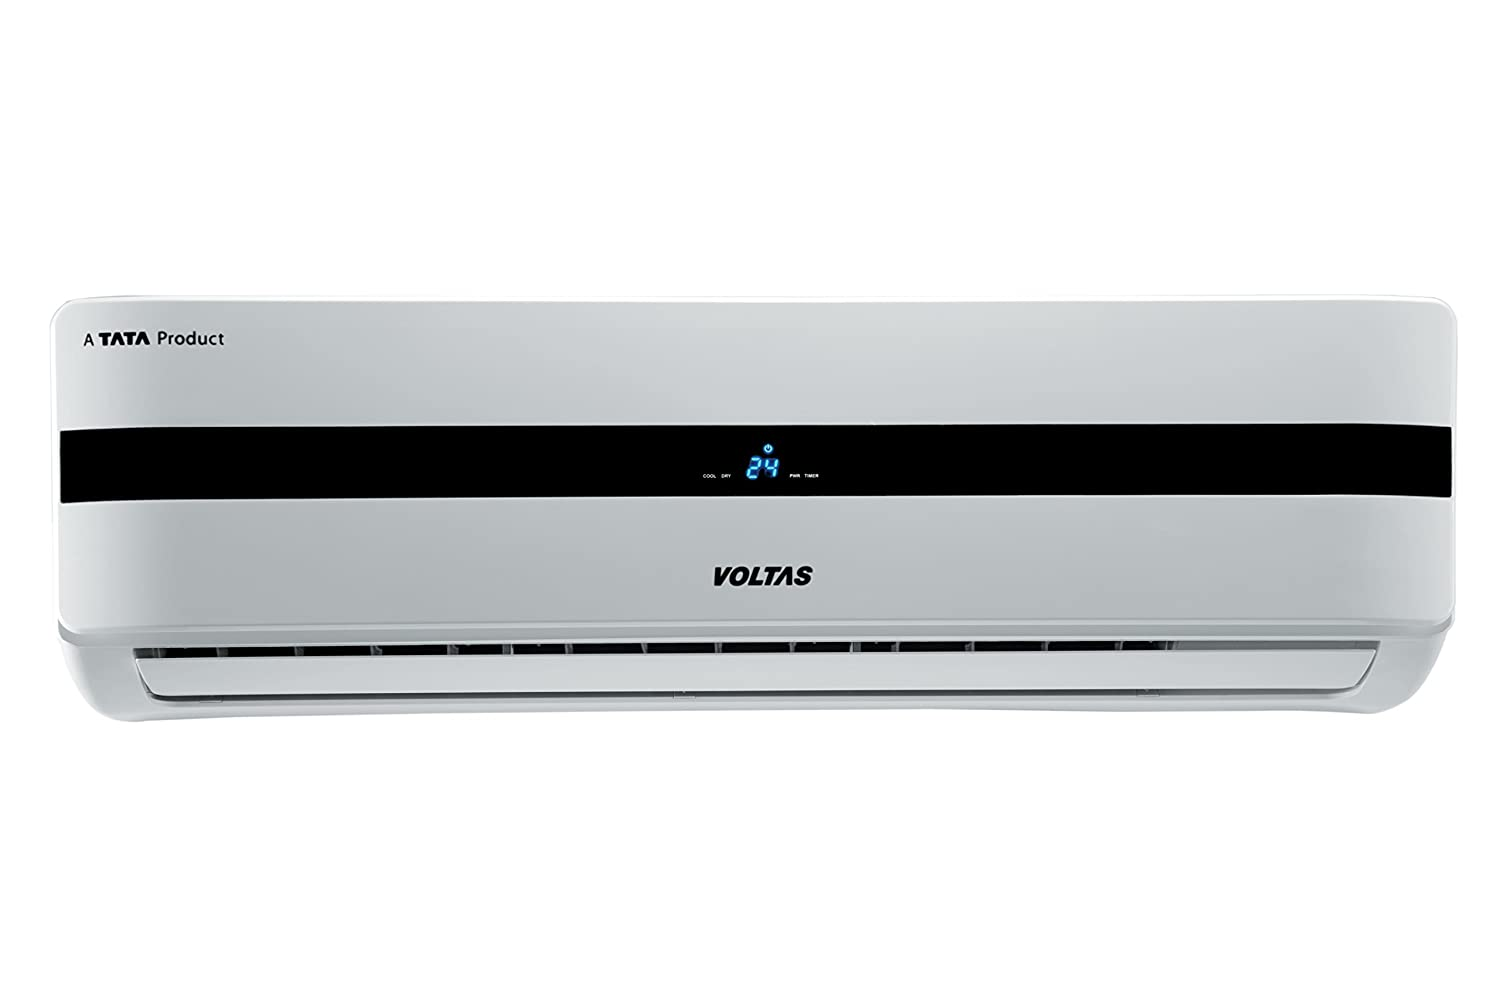 Summer Sale!! Upto 35% Off On Everything By Amazon | Voltas SAC 173IY Split AC (1.4 Ton, 3 Star Rating, Silver/Black,Copper) @ Rs.26,990